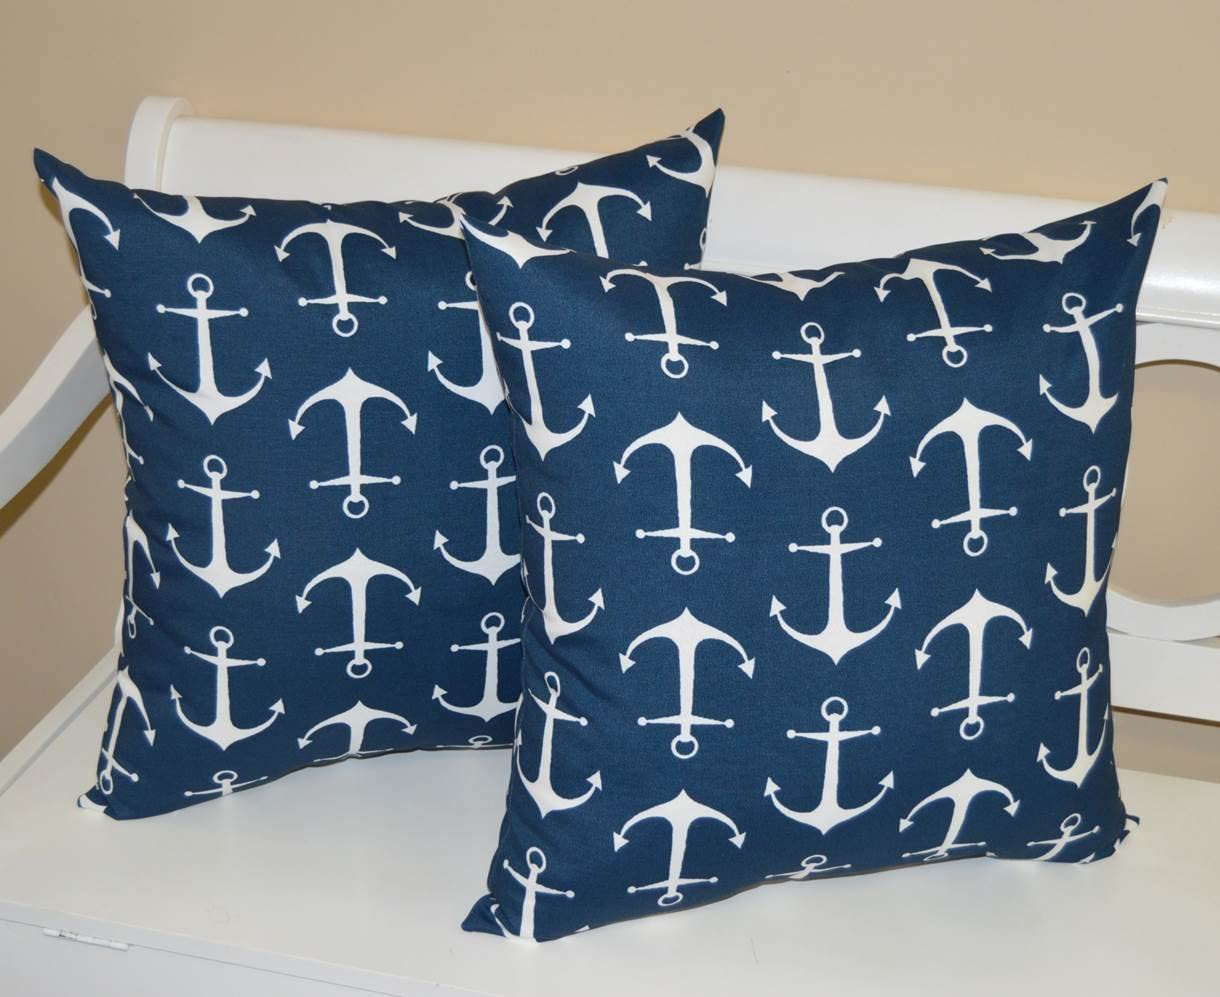 Resort Spa Home Decor Set of 2 – Indoor Outdoor 20 Square Decorative Throw Toss Pillows – Nautical Navy Blue with White Anchors